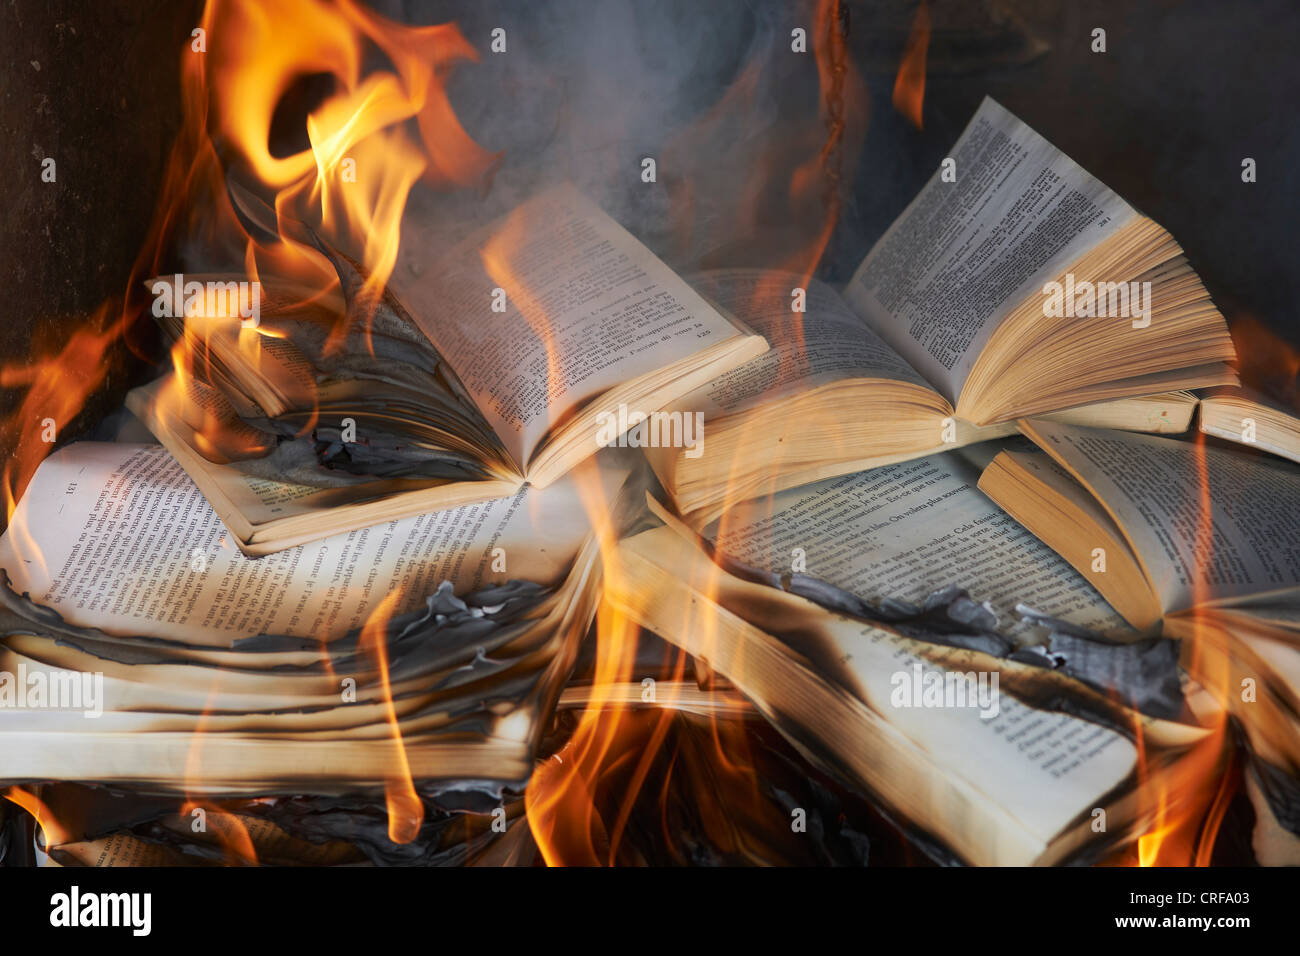 Books burning in fire Stock Photo